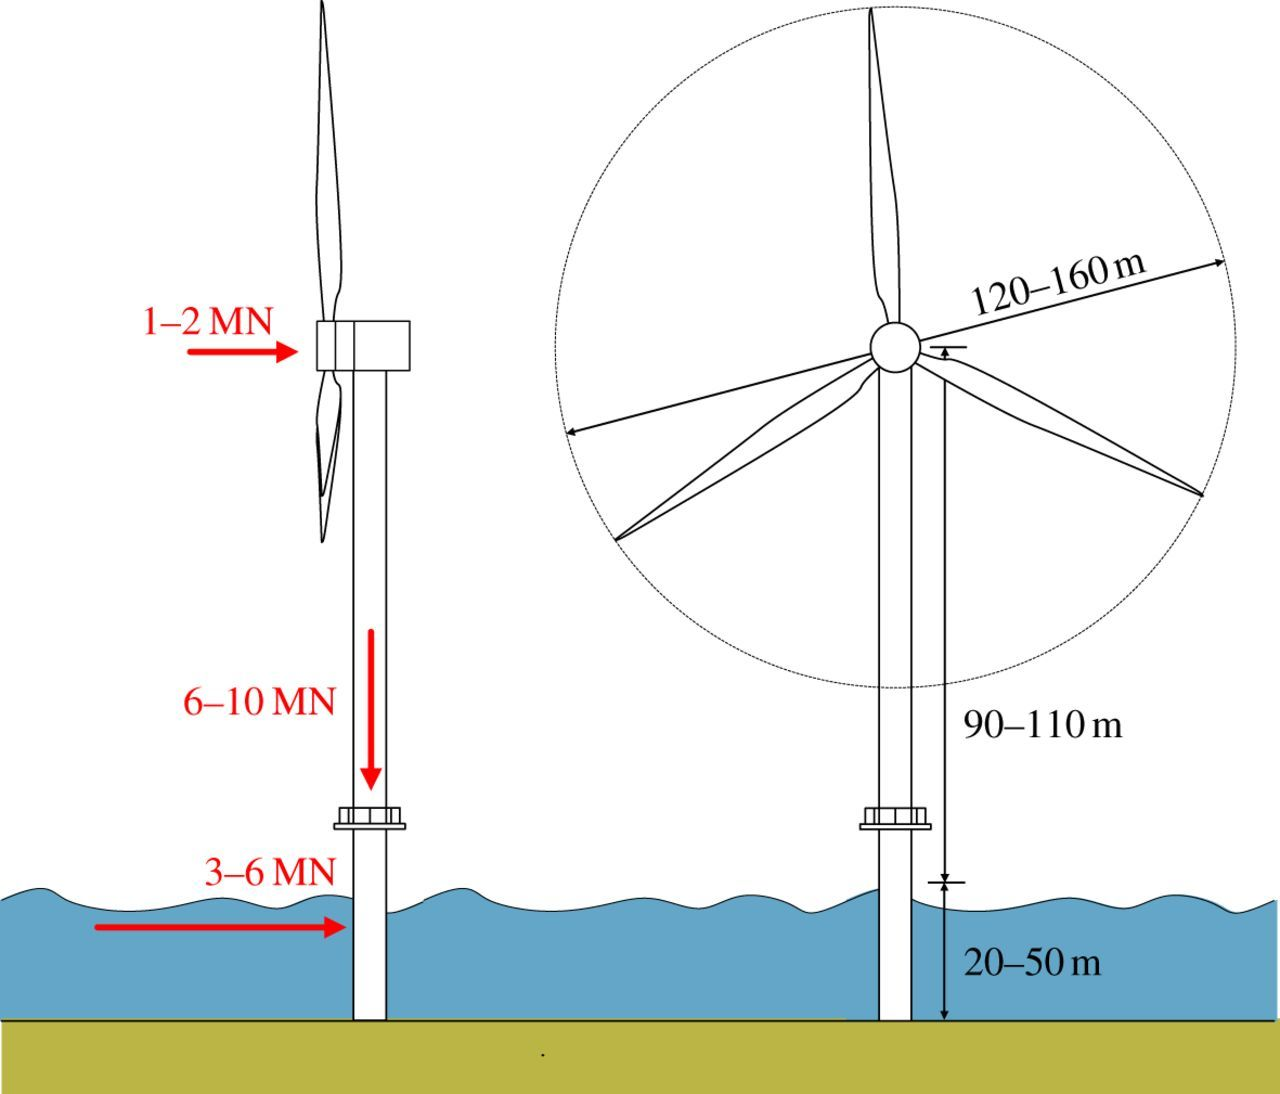 Helical piles: an innovative foundation design option for offshore